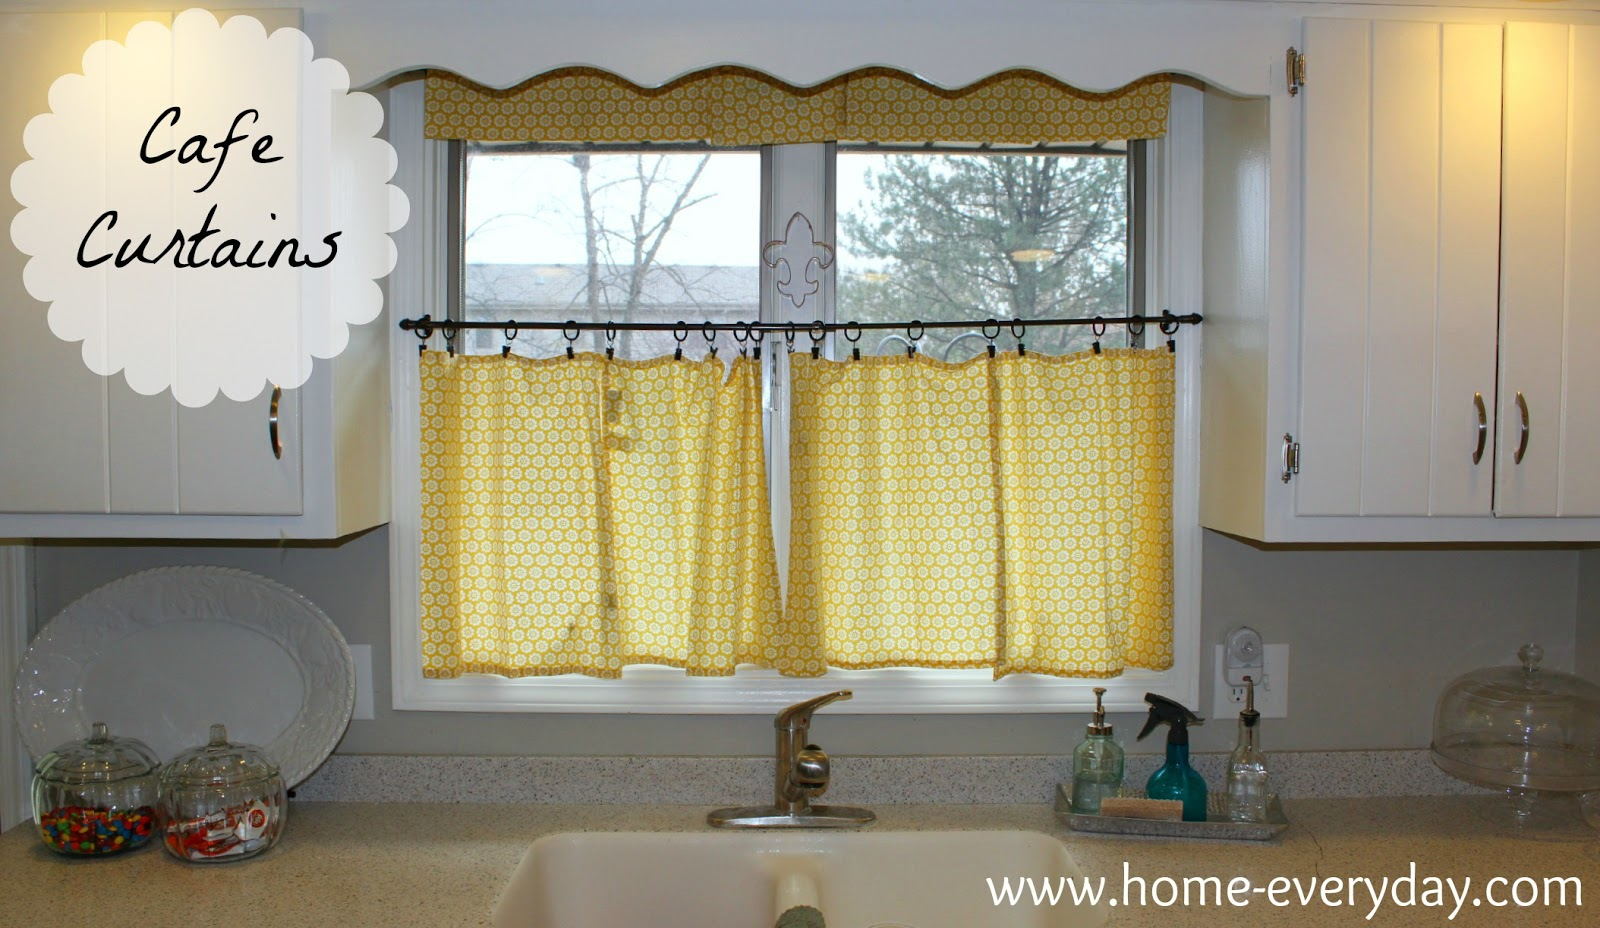 Cafe Curtain Clips Election Hangover Quick Fix Curtains Home Everyday